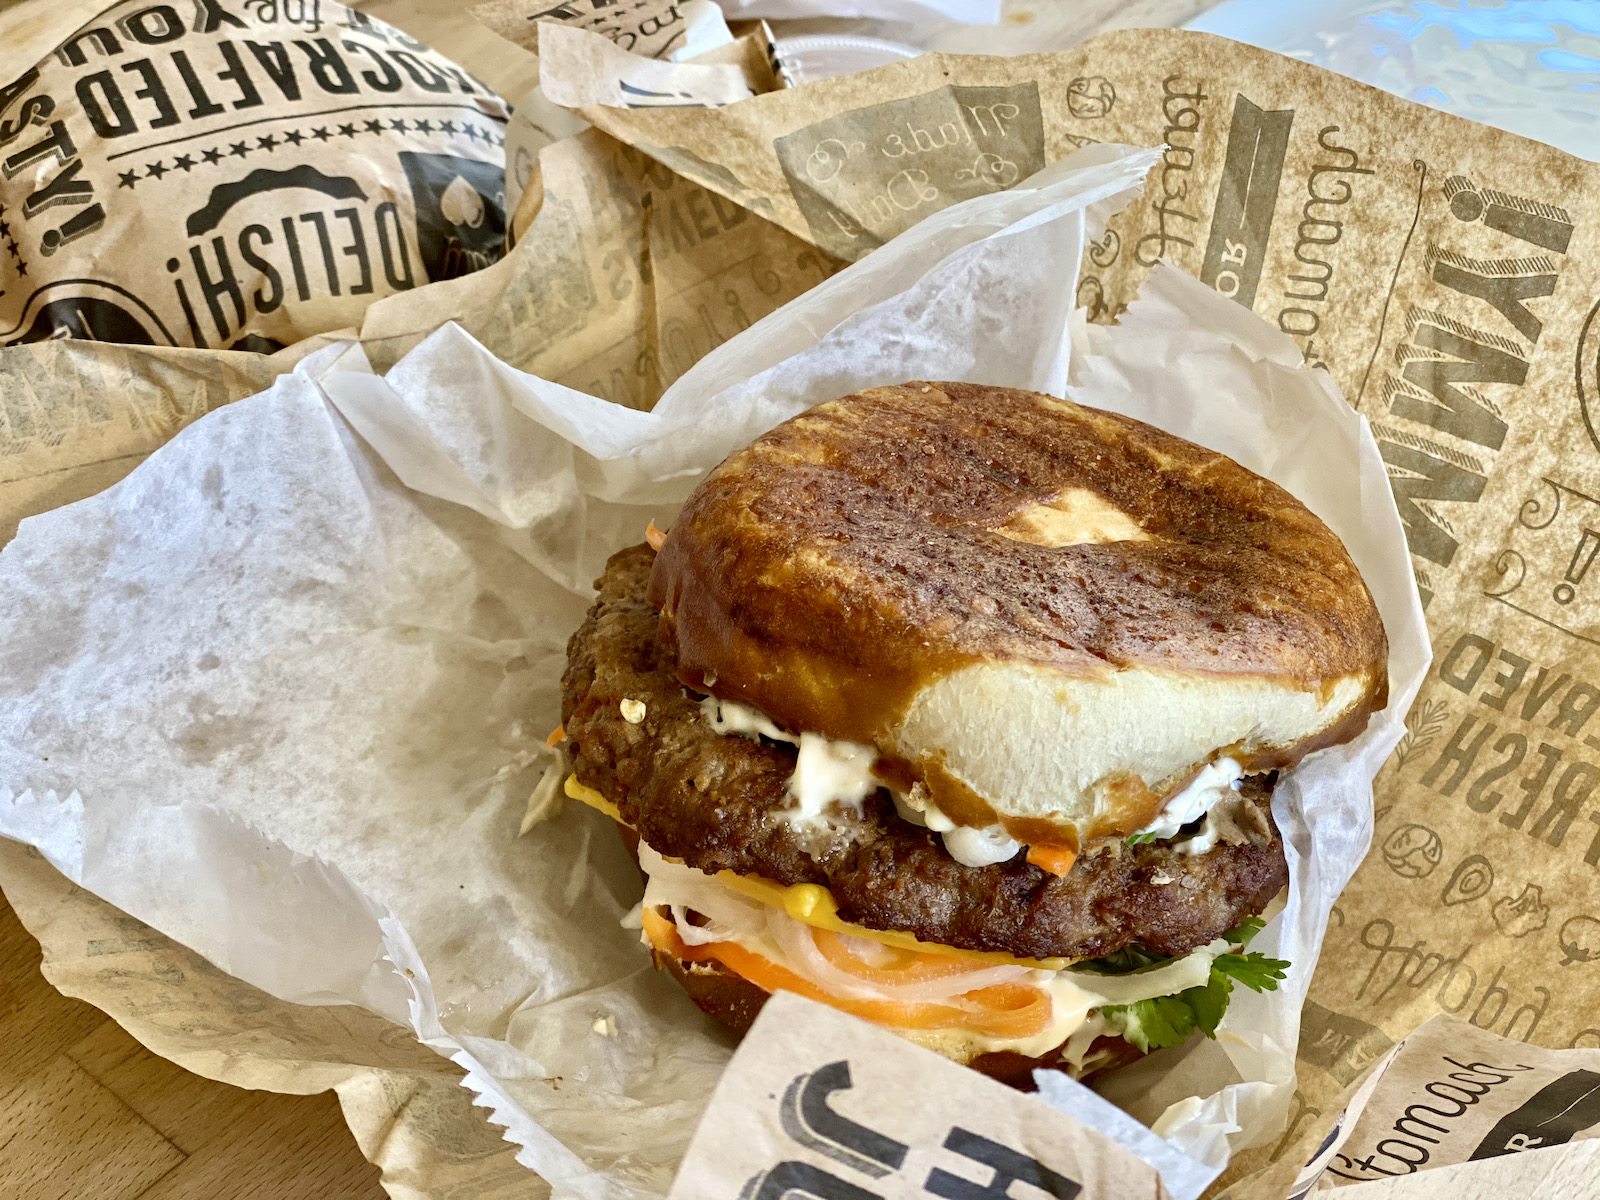 The Banh Mi Burger in its packaging